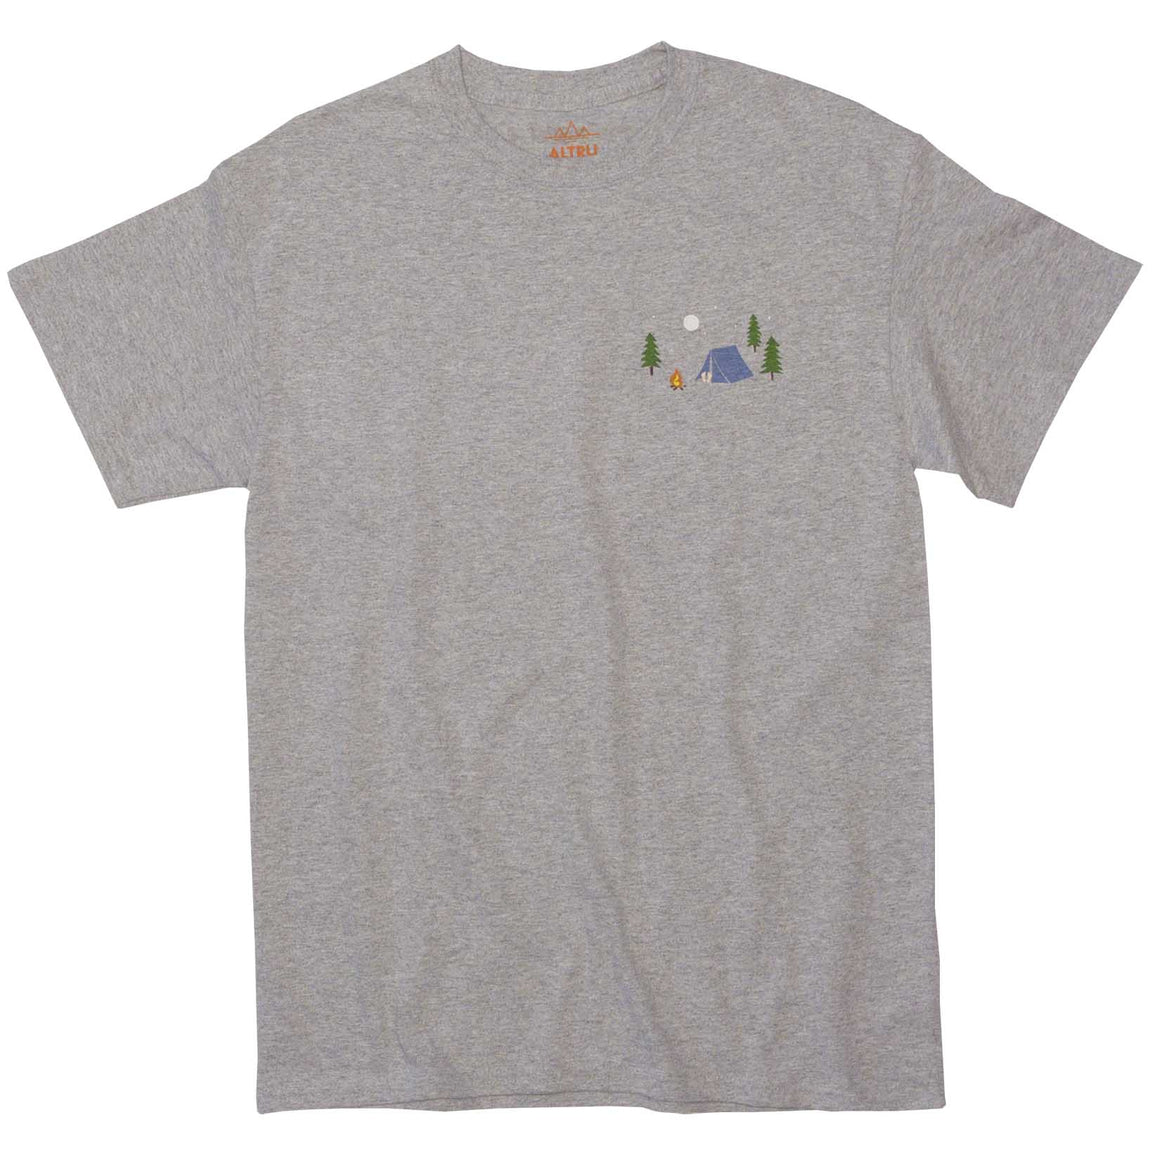 Campsite with fire pit graphic tee graphic tee.